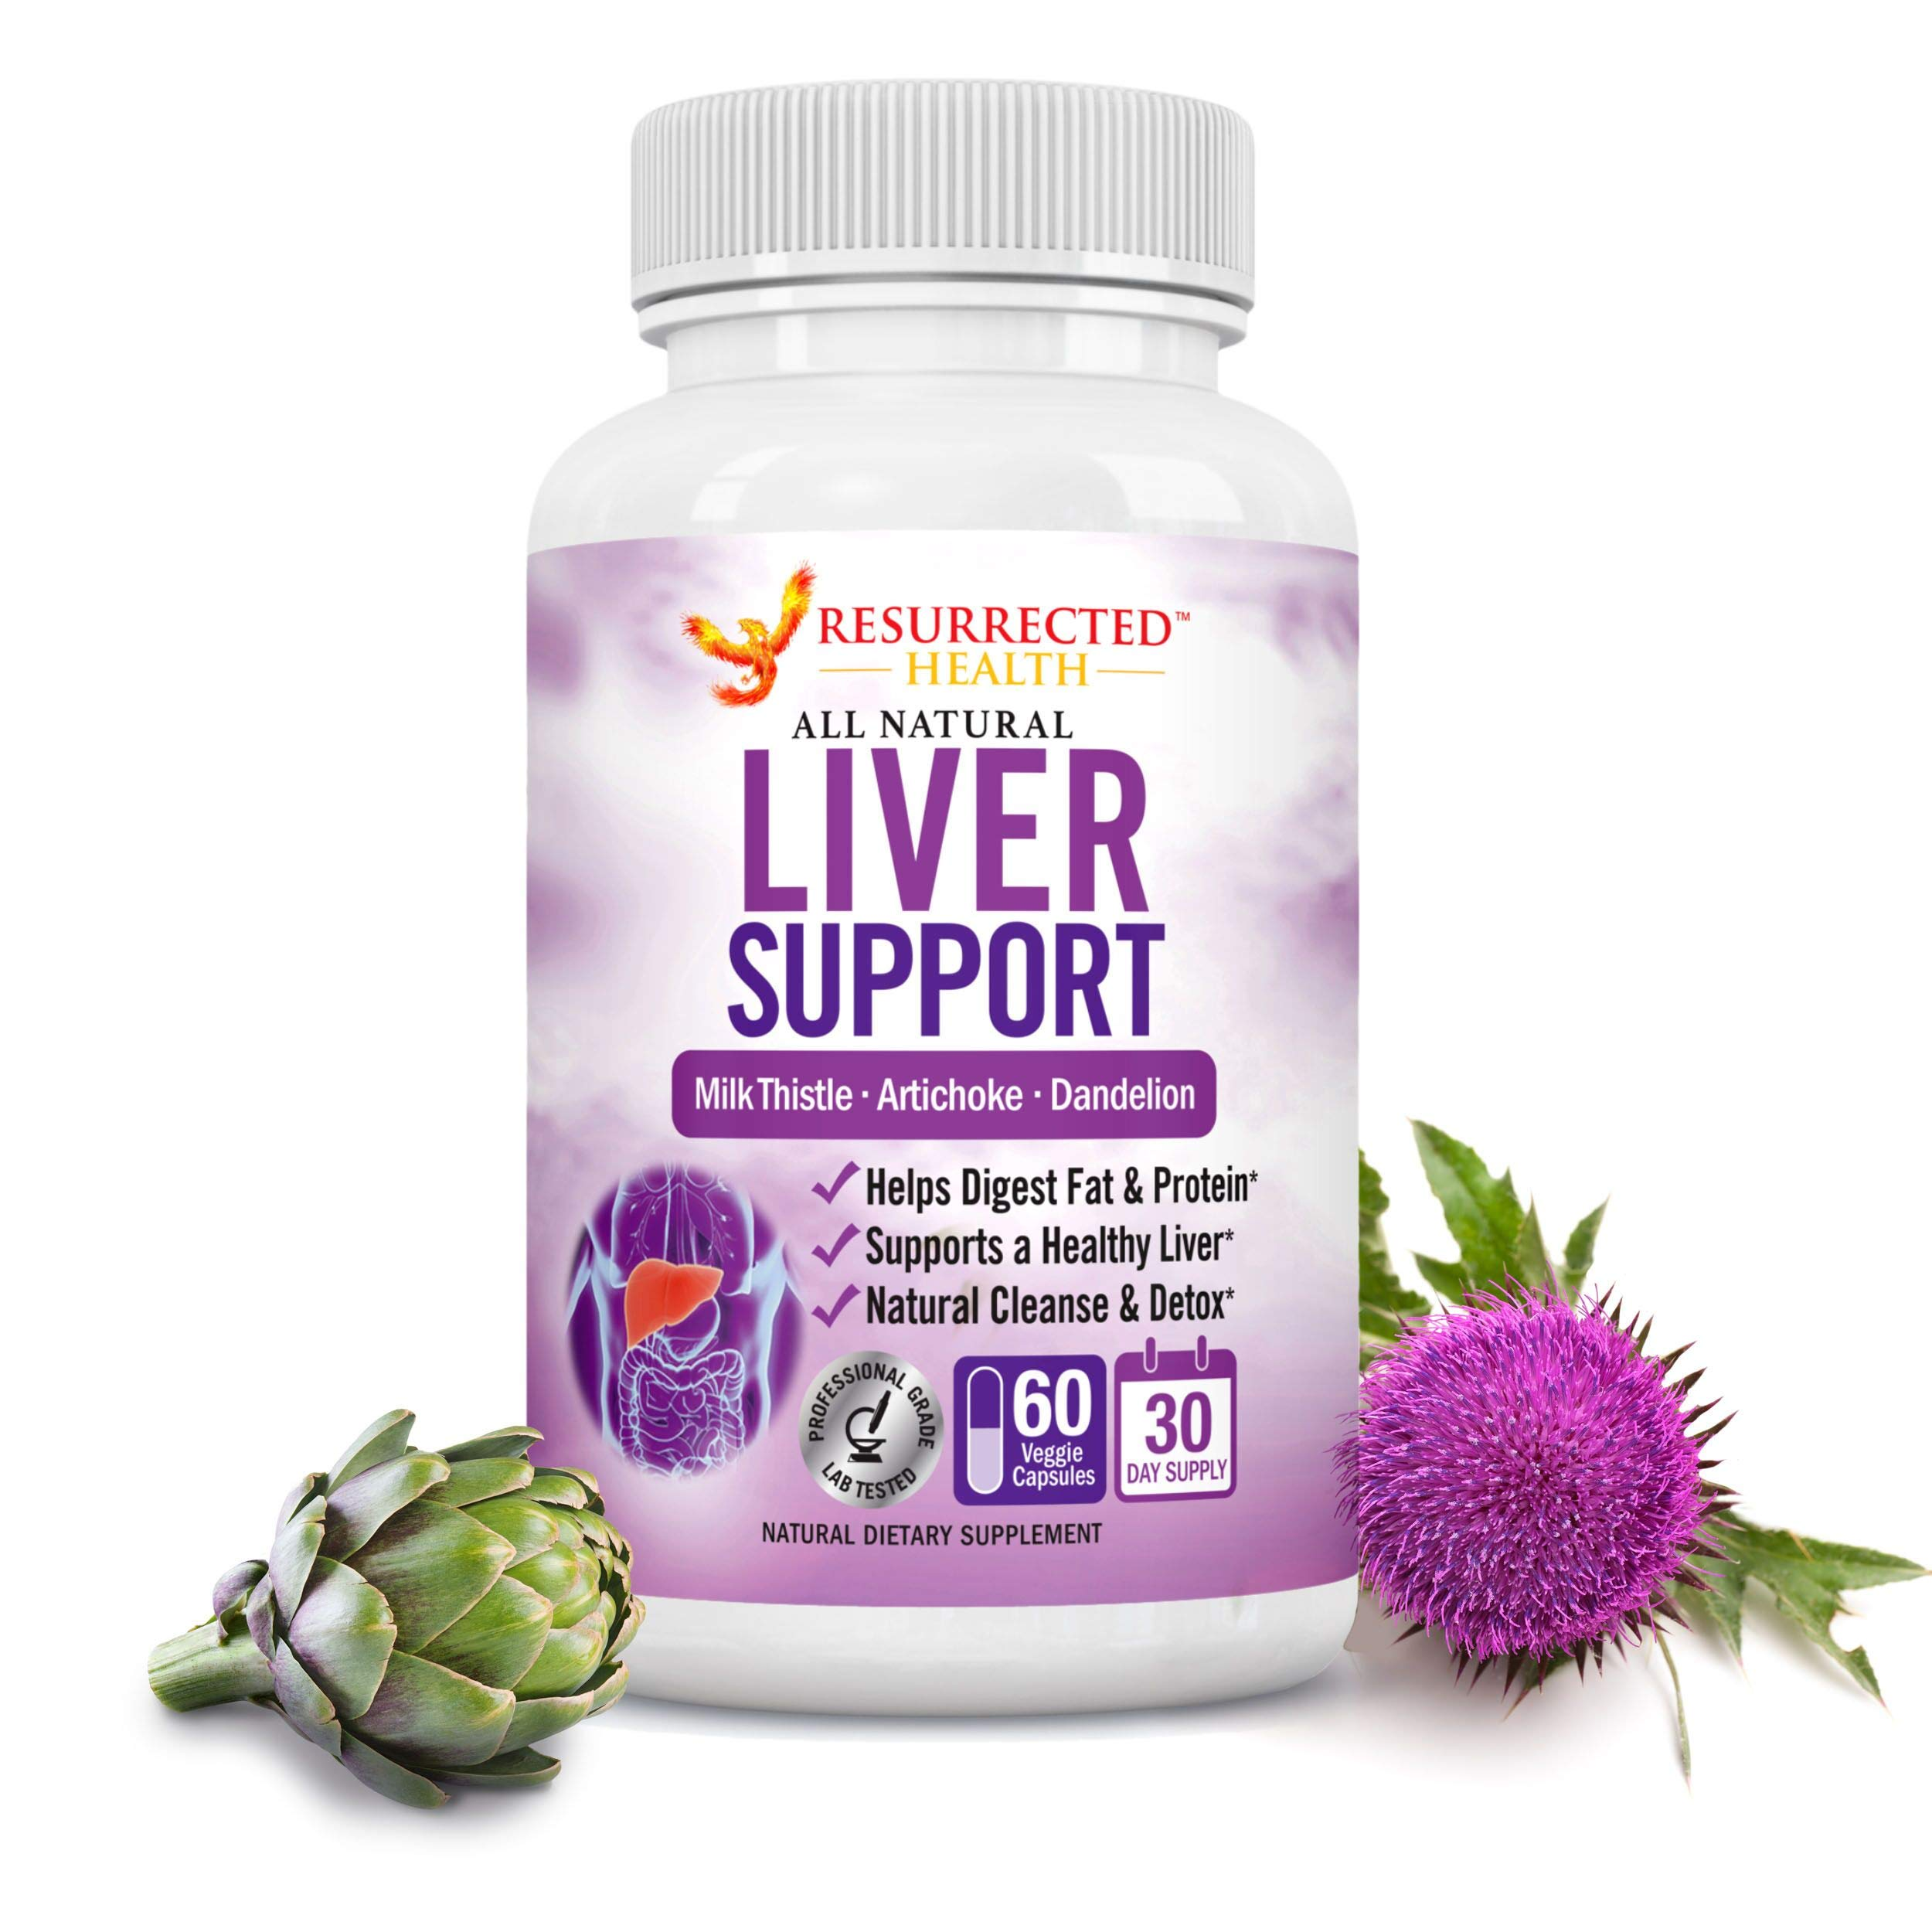 Liver Support Supplement - 22 Herbs for Liver Detox & Repair with Milk Thistle & Turmeric - Plant Based Liver Cleanse